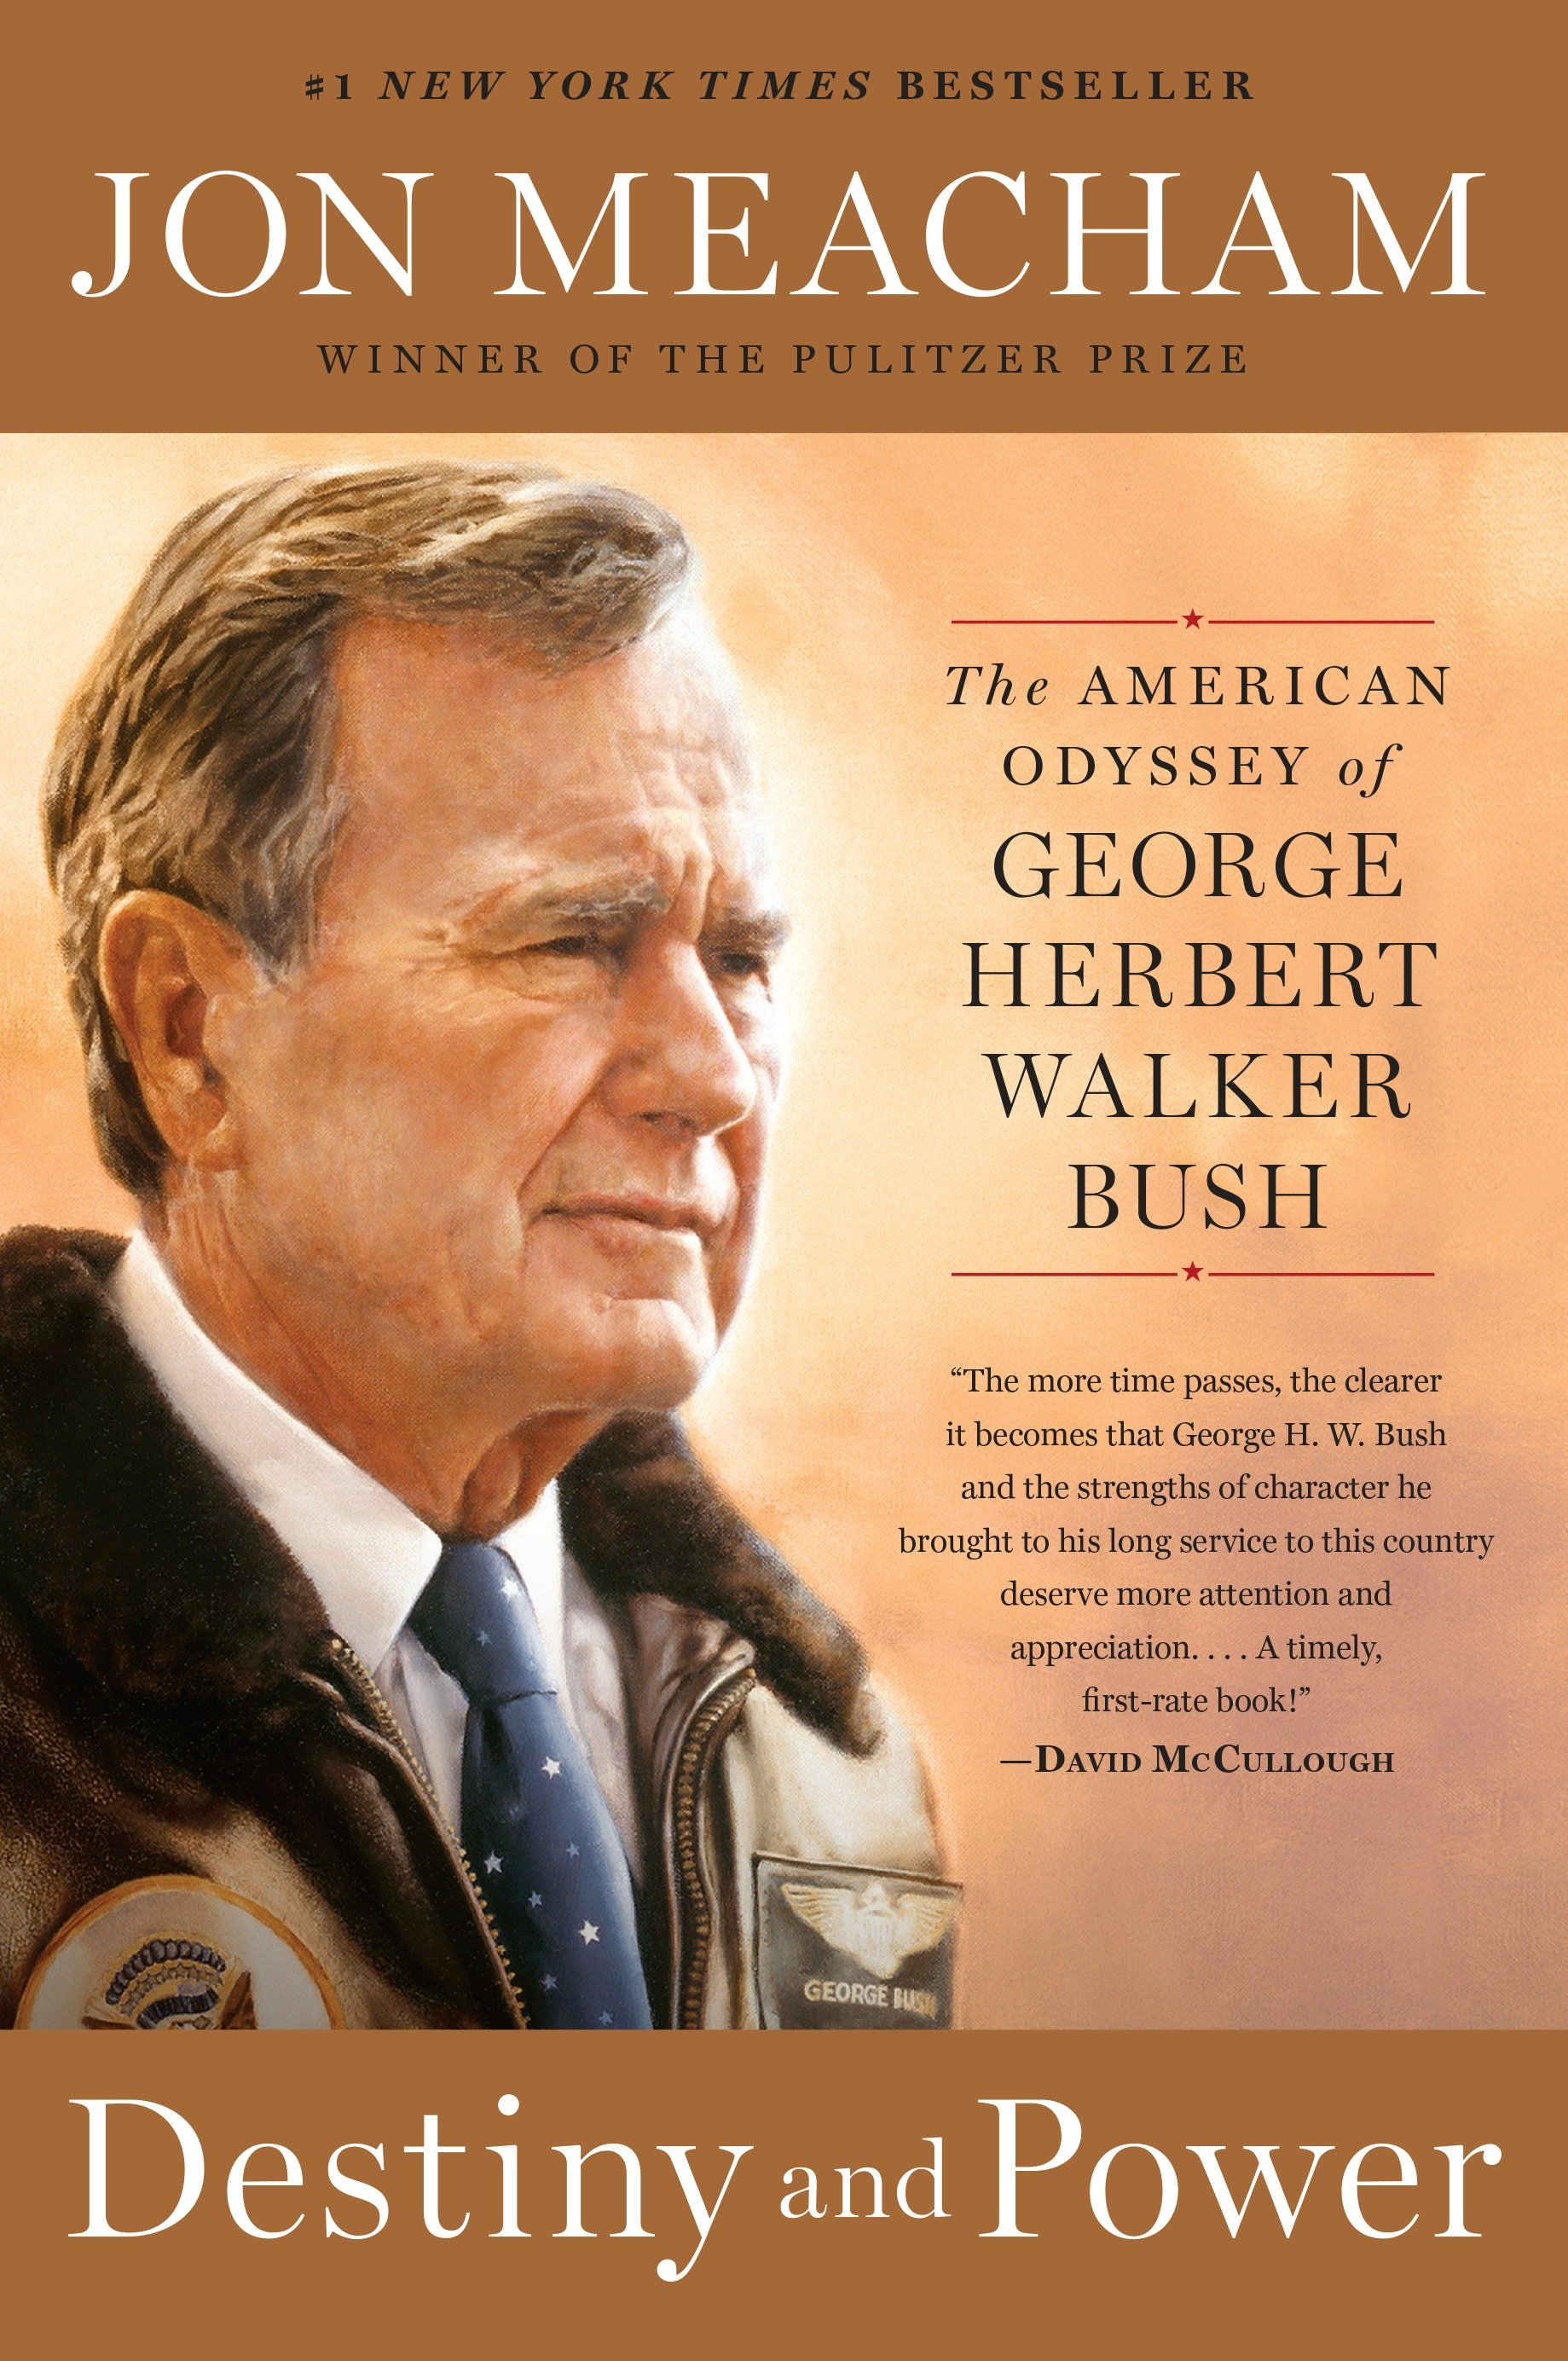 Destiny and power the American odyssey of George Herbert Walker Bush cover image